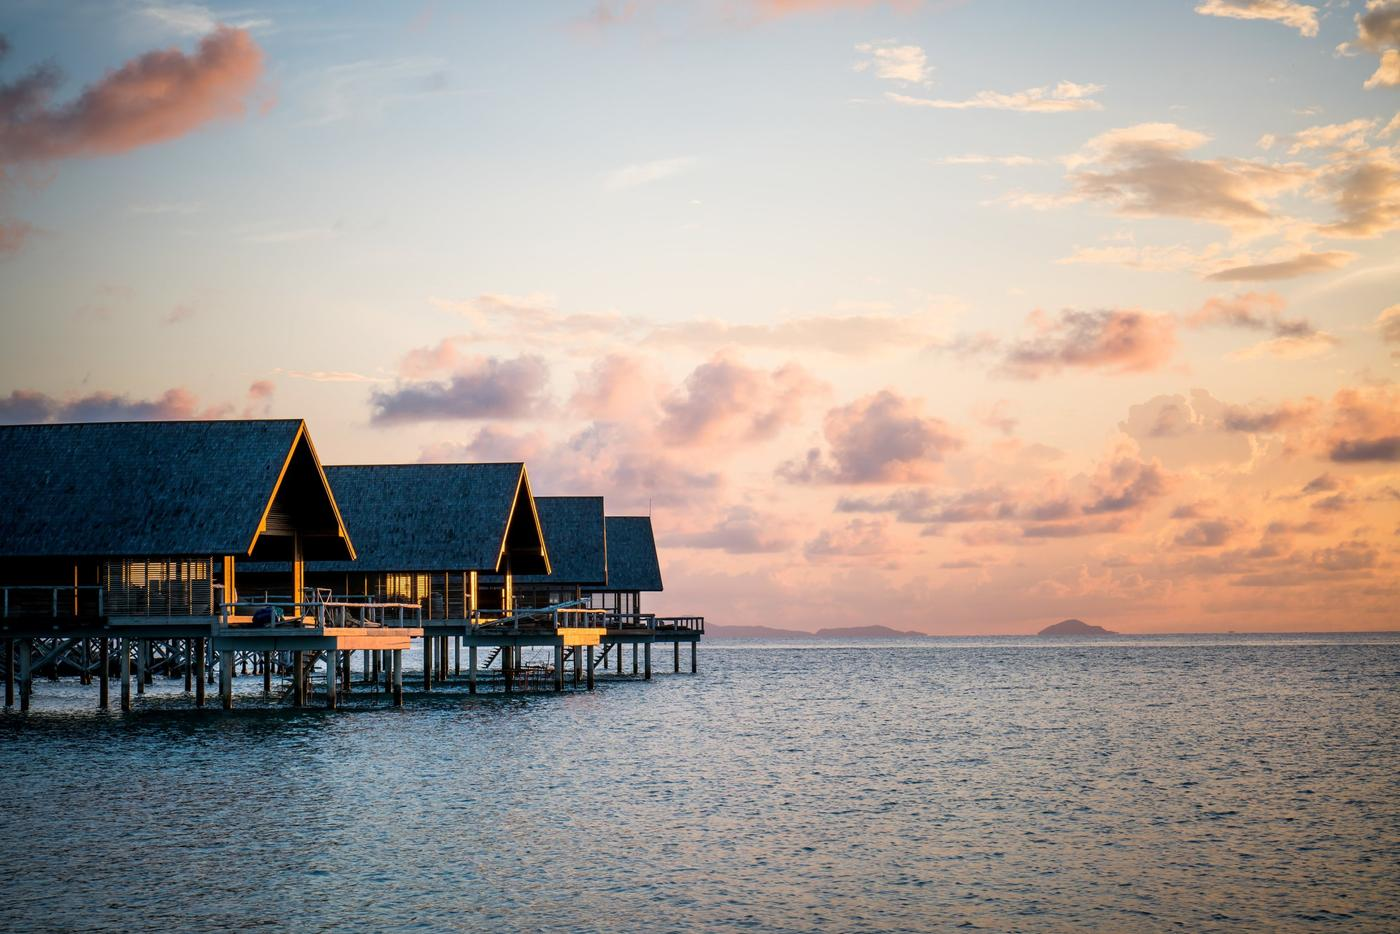 Overwater Bungalows, Bawah Reserve